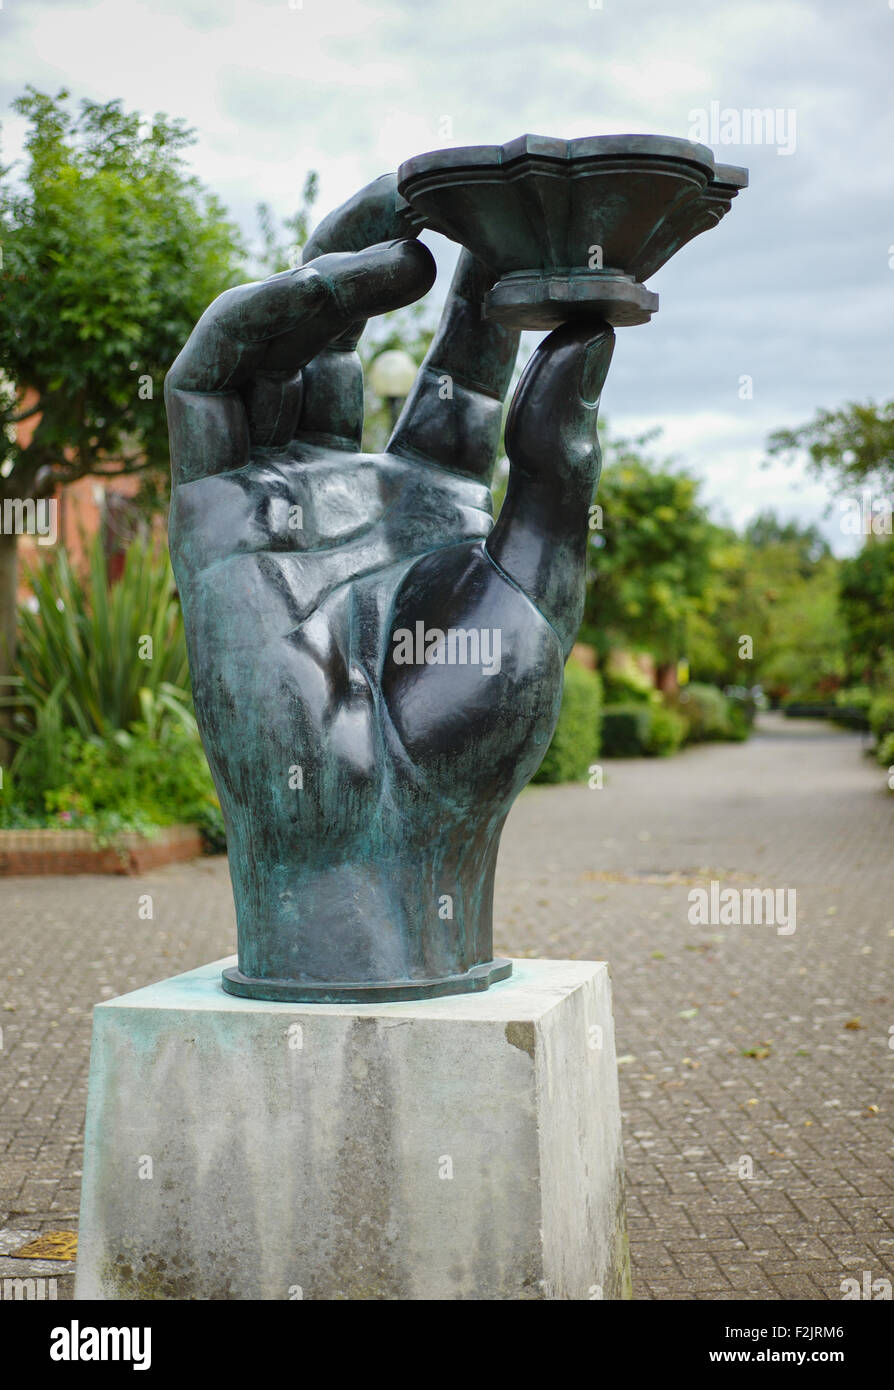 Hand of a River God on Baltic Wharf by Bristol's floating harbour - a bronze sculpture by Vincent Woropay - Stock Image